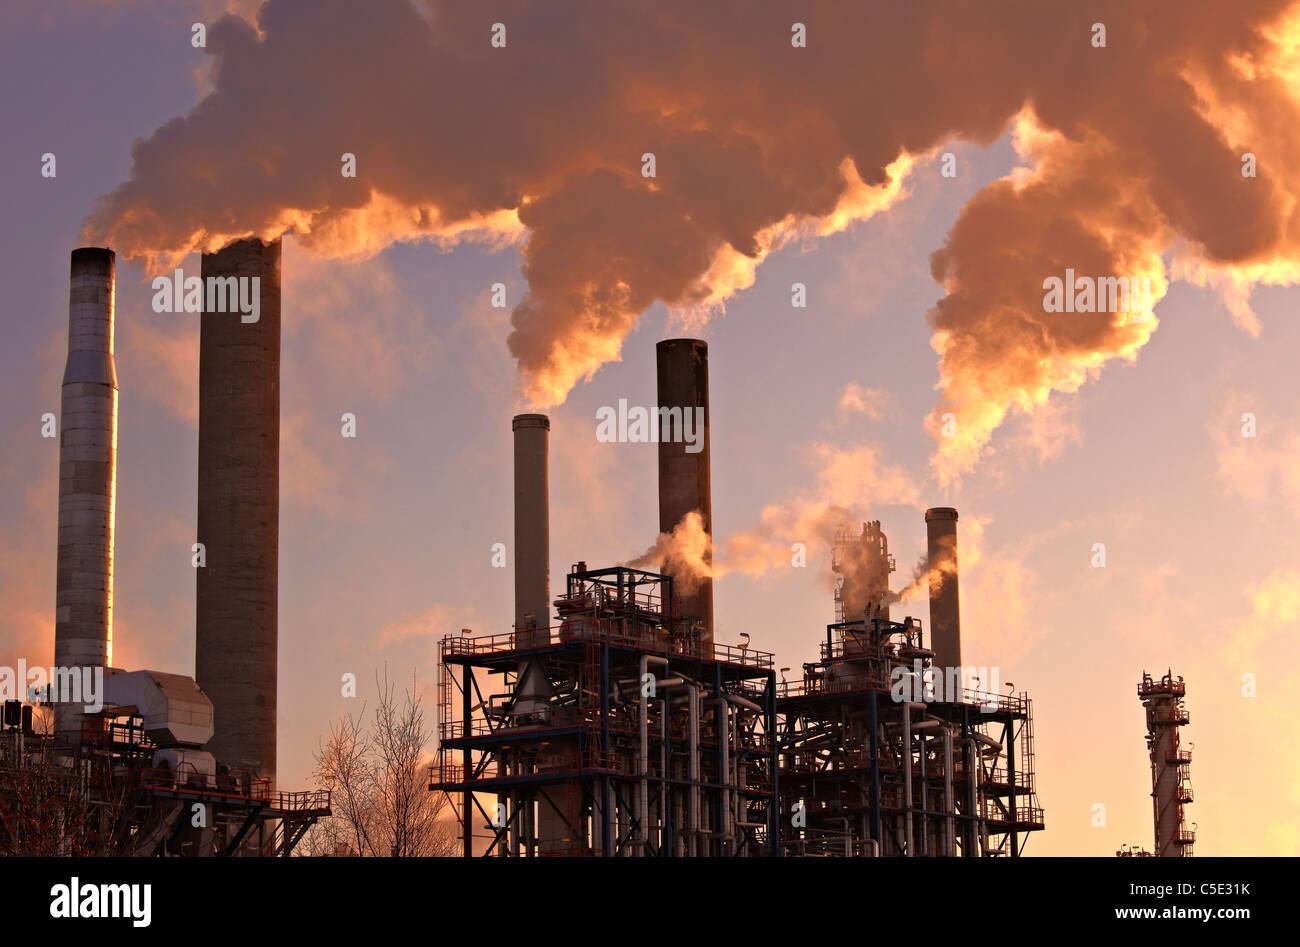 Smokes emitting from chimneys at the industry area Stock Photo